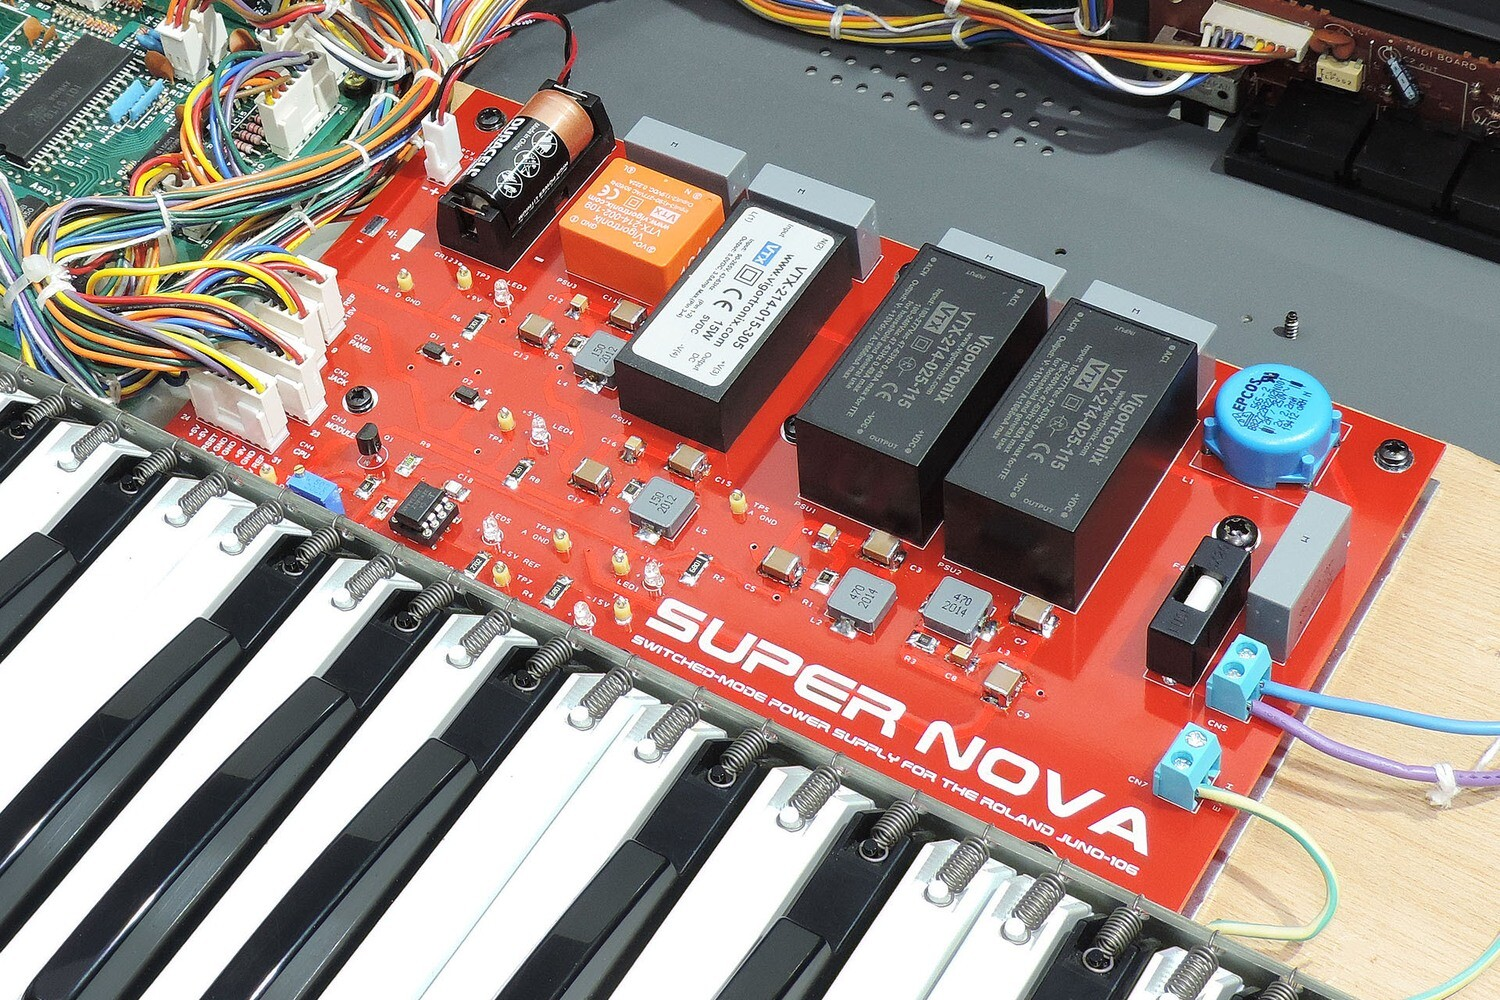 Installation of Super Nova Switched-Mode Power Supply for the Roland Juno-106